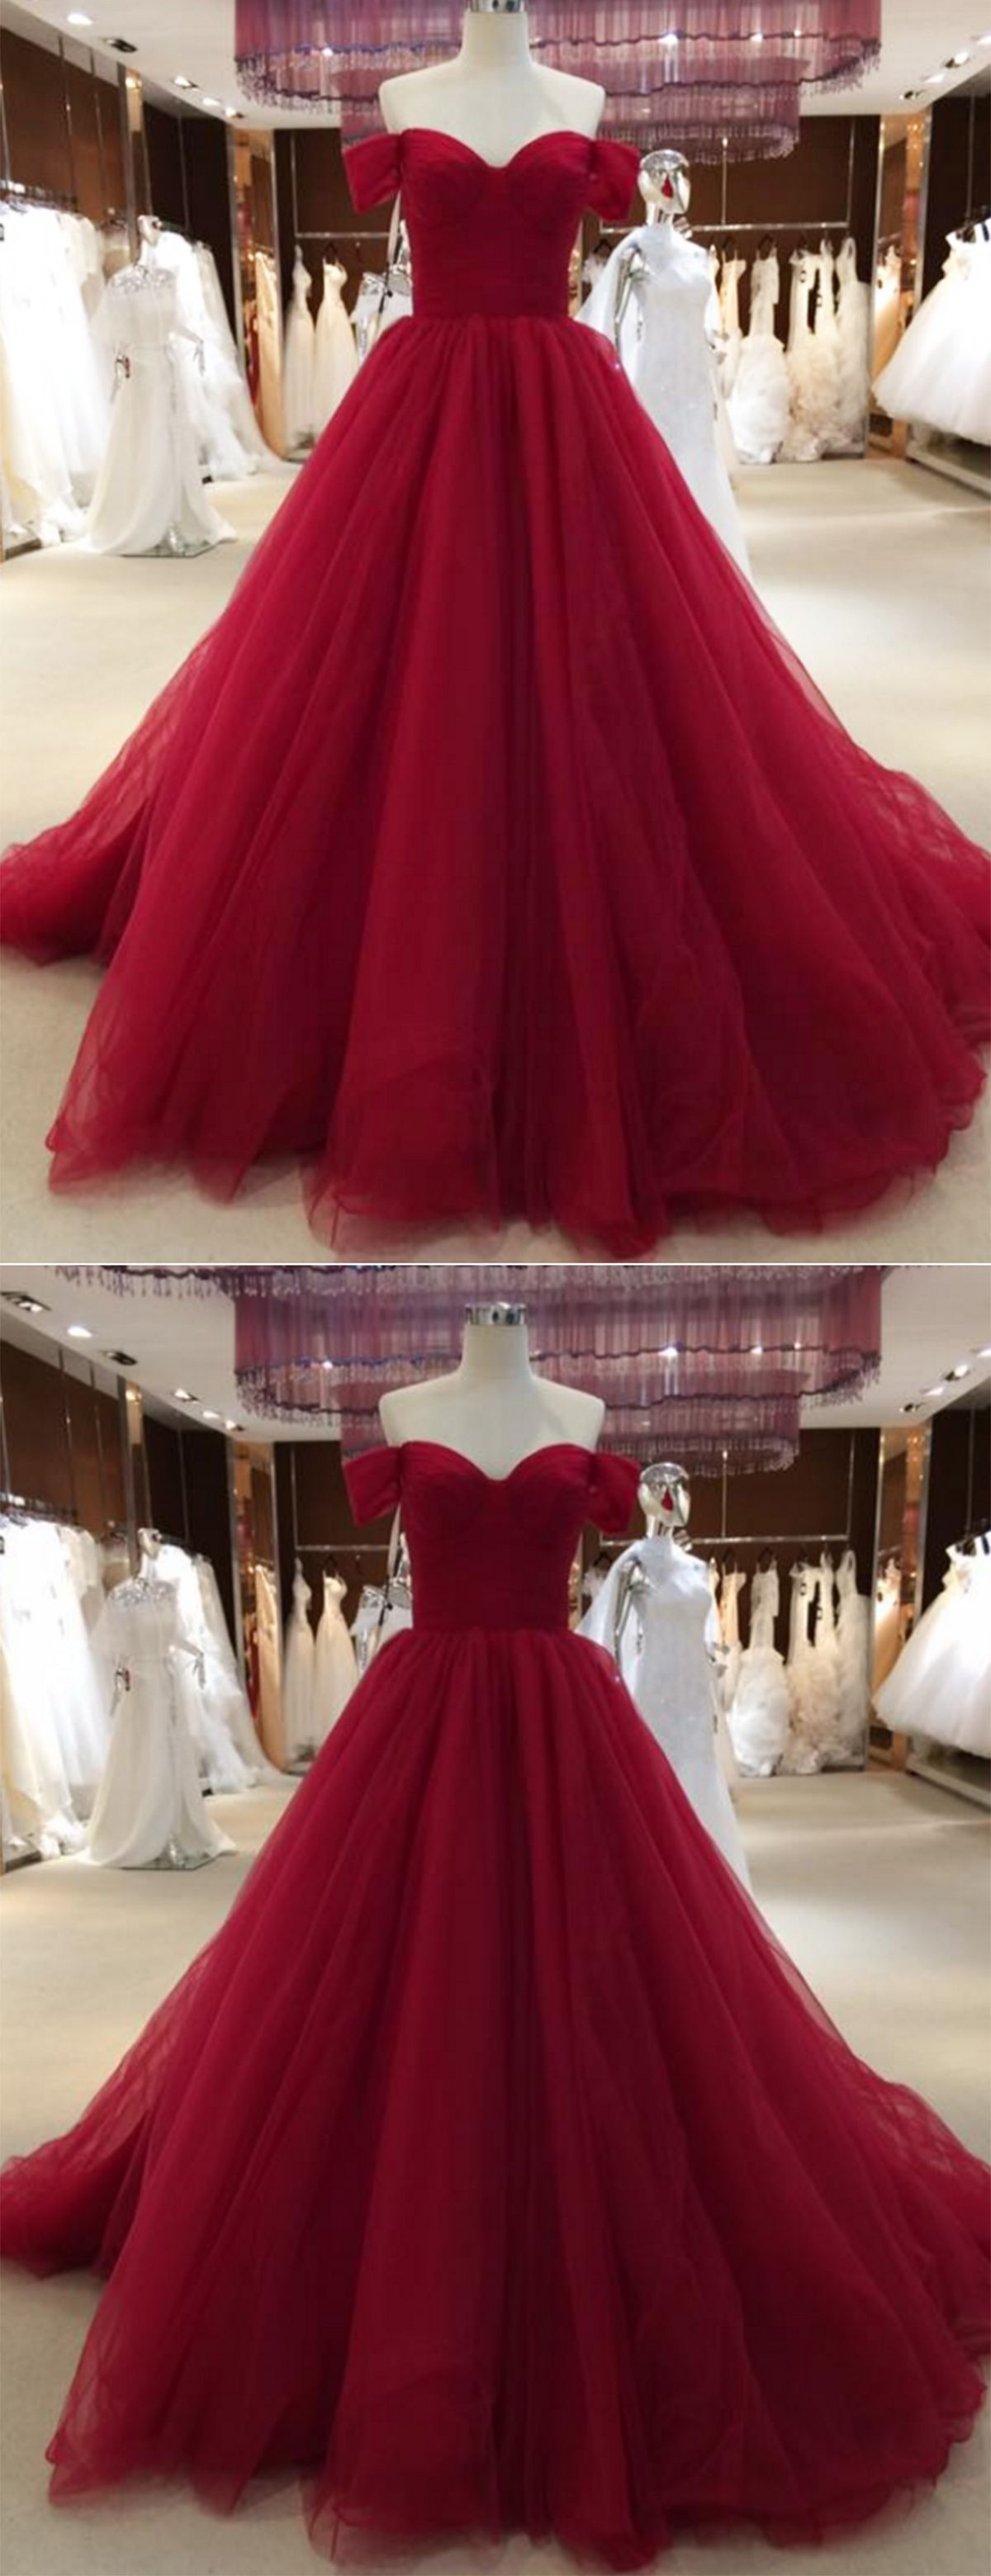 Simple burgundy tulle long sweetheart neckline evening dress with